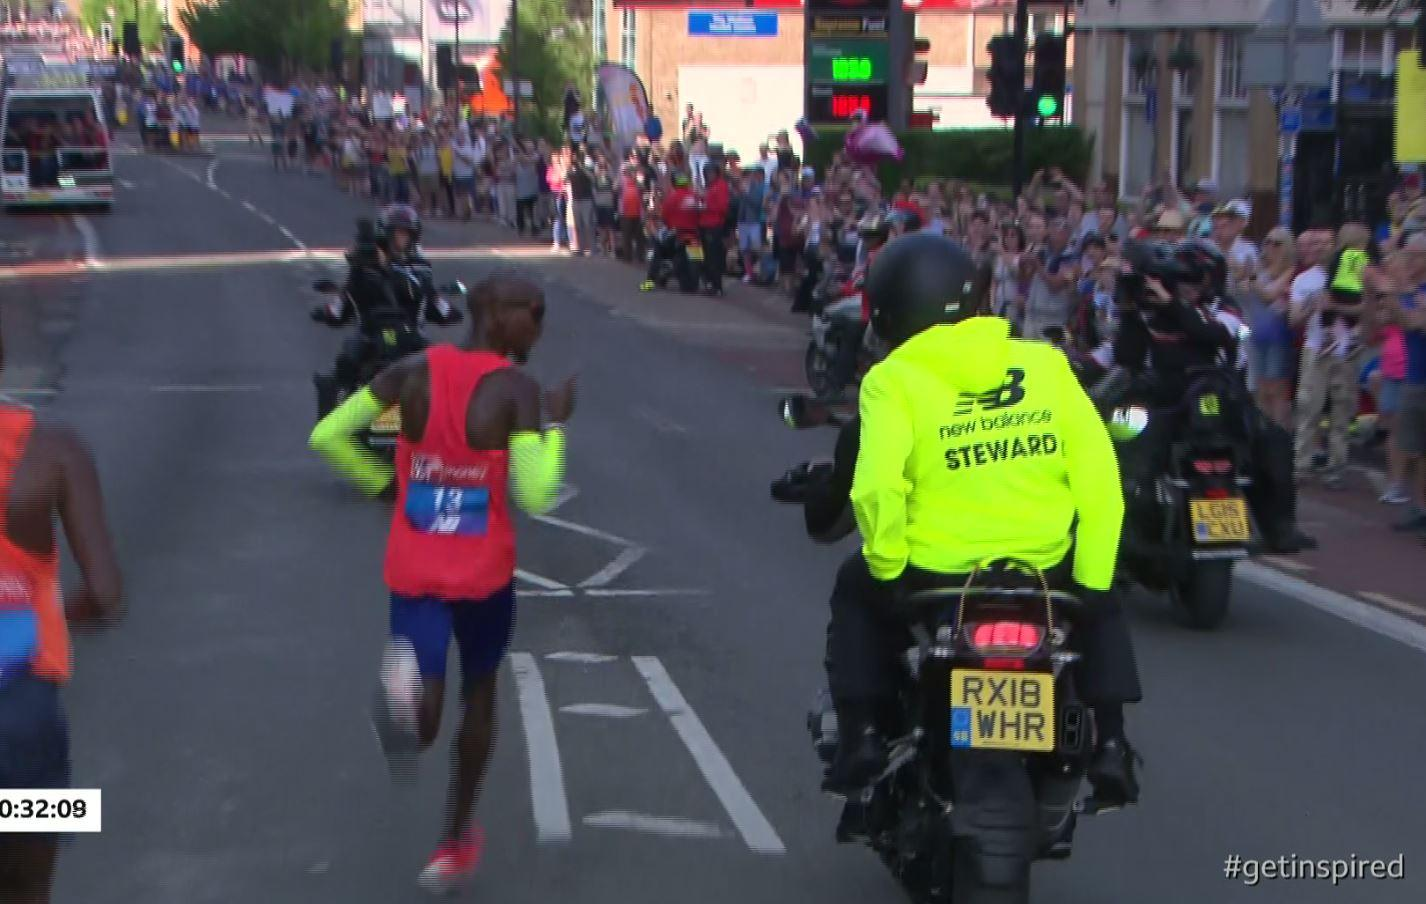 Mo Farah was not happy but staff on motorbikes could not help